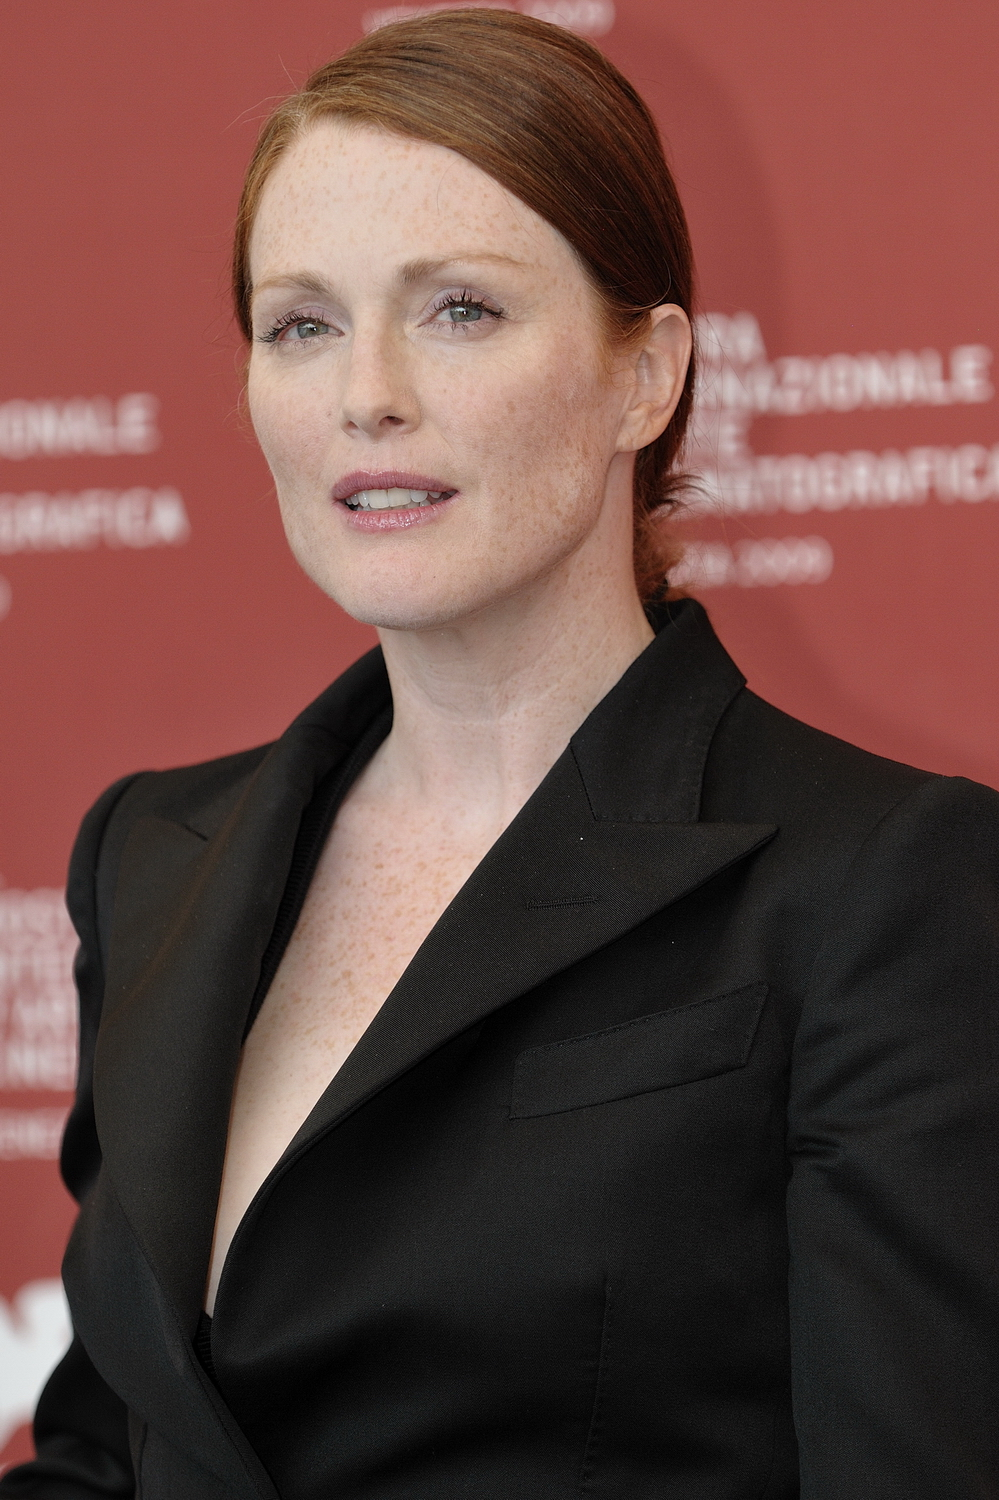 julianne moore and her daughterjulianne moore instagram, julianne moore films, julianne moore 2016, julianne moore movies, julianne moore oscar, julianne moore 2017, julianne moore gif, julianne moore loreal, julianne moore wiki, julianne moore site, julianne moore and her daughter, julianne moore twitter, julianne moore and bart freundlich, julianne moore crying, julianne moore foto, julianne moore john cusack, julianne moore makeup, julianne moore green, julianne moore street, julianne moore daughter